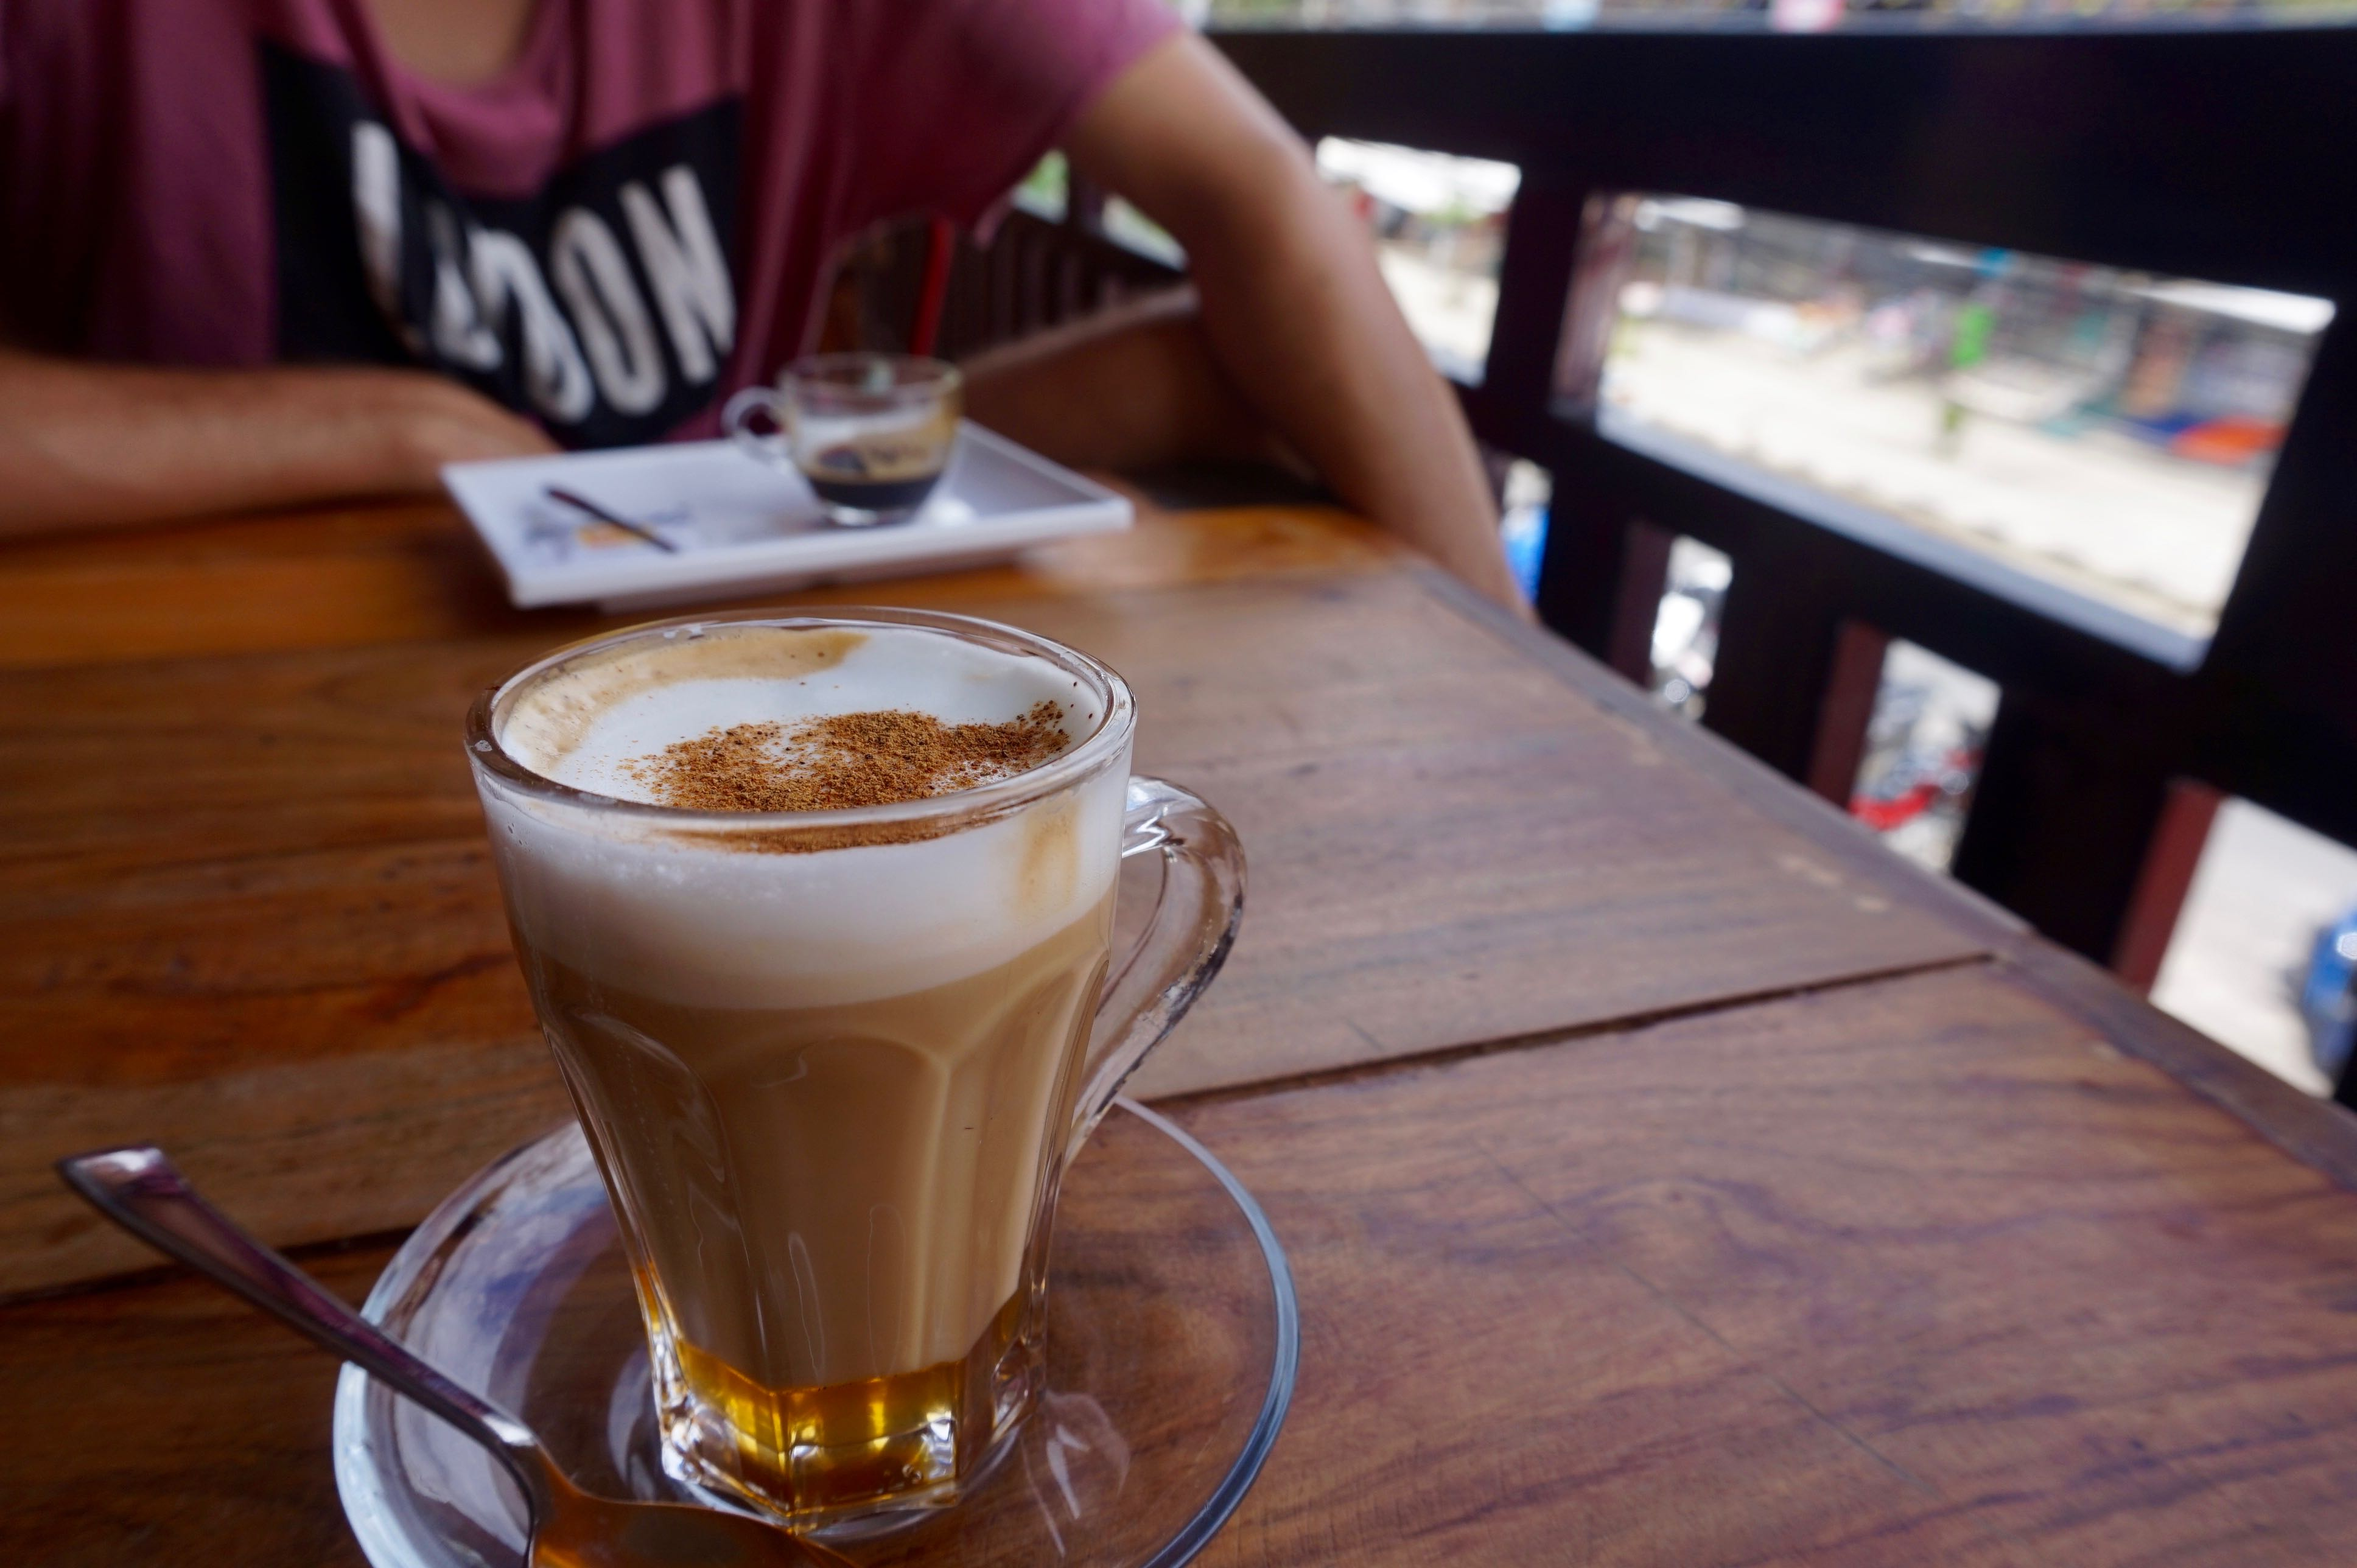 Coffee from White Rabbit Cafe